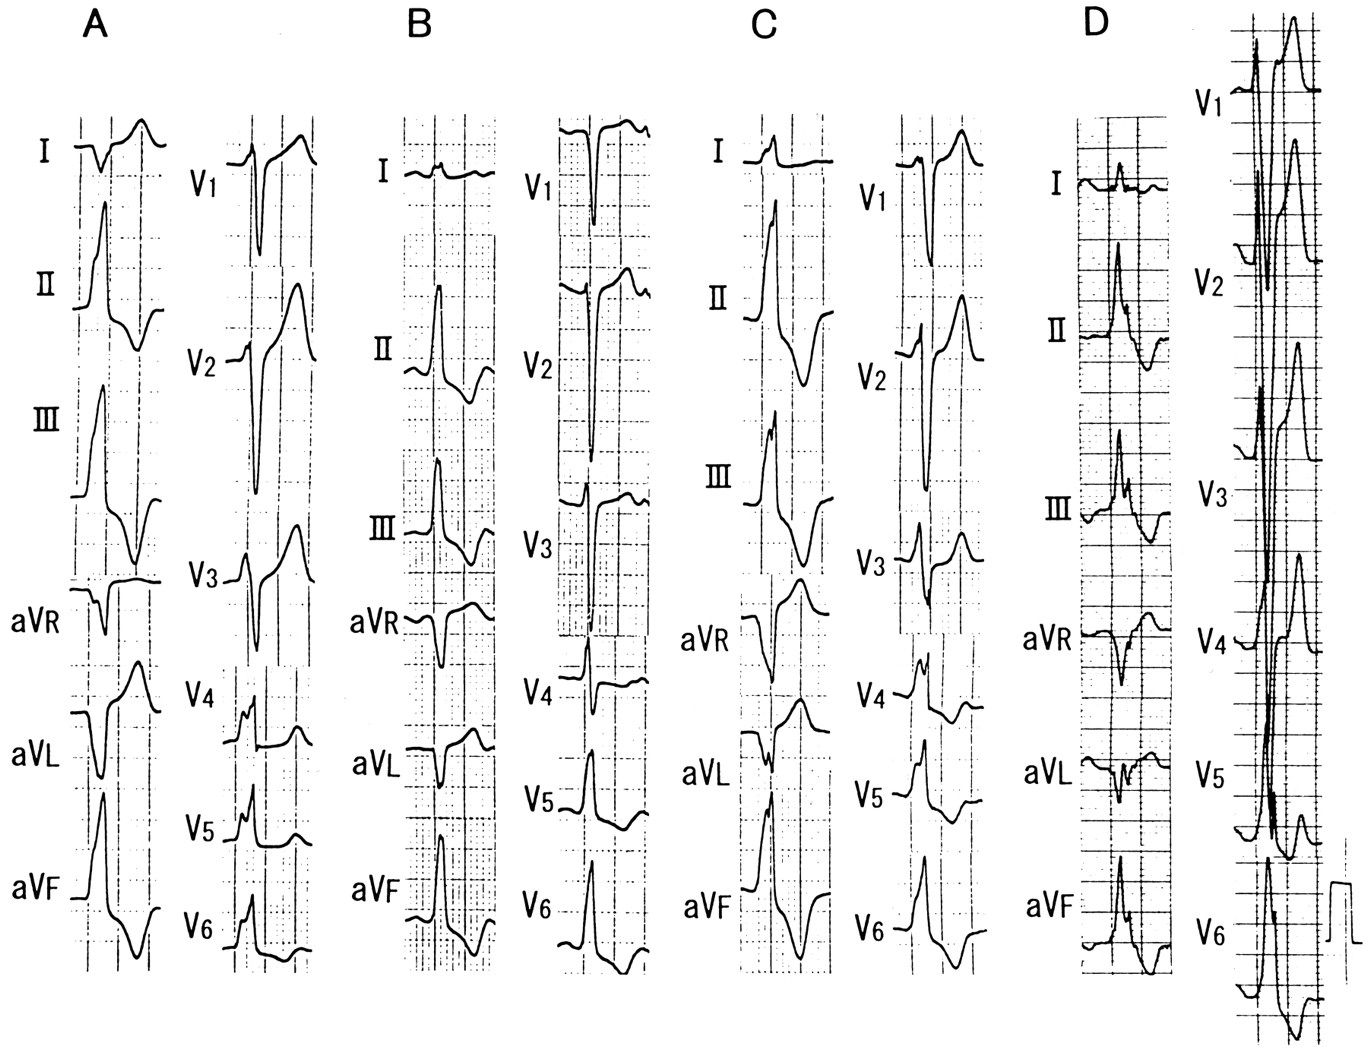 Localization Of Optimal Ablation Site Of Idiopathic Ventricular Tachycardia From Right And Left